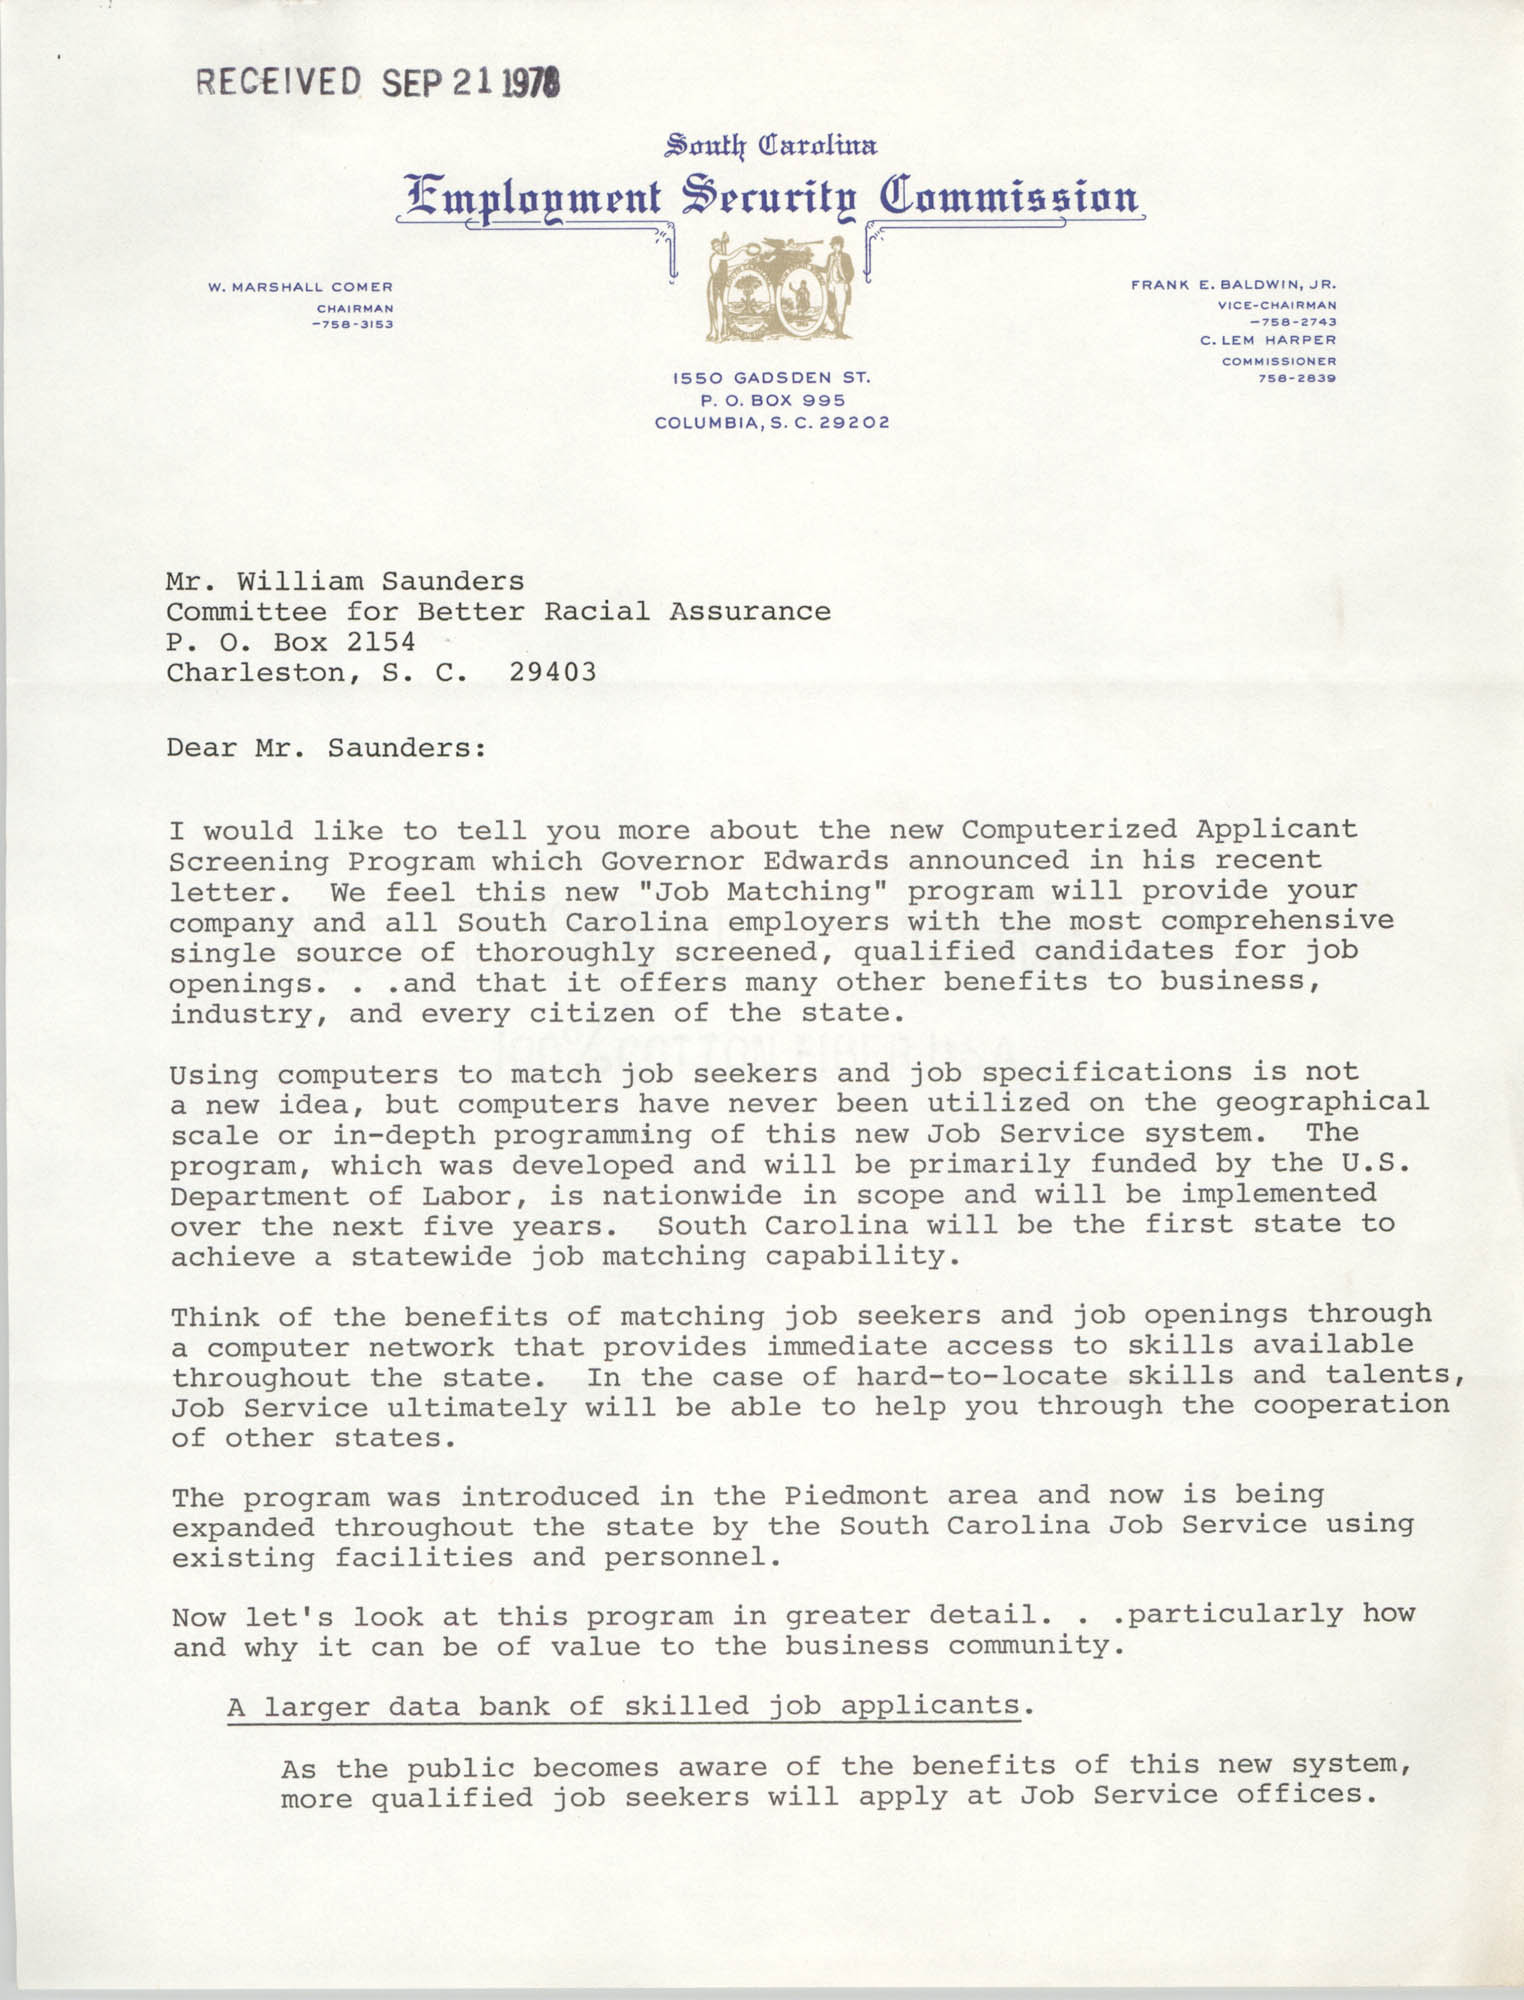 Letter from Robert E. David to William Saunders, September 21, 1978